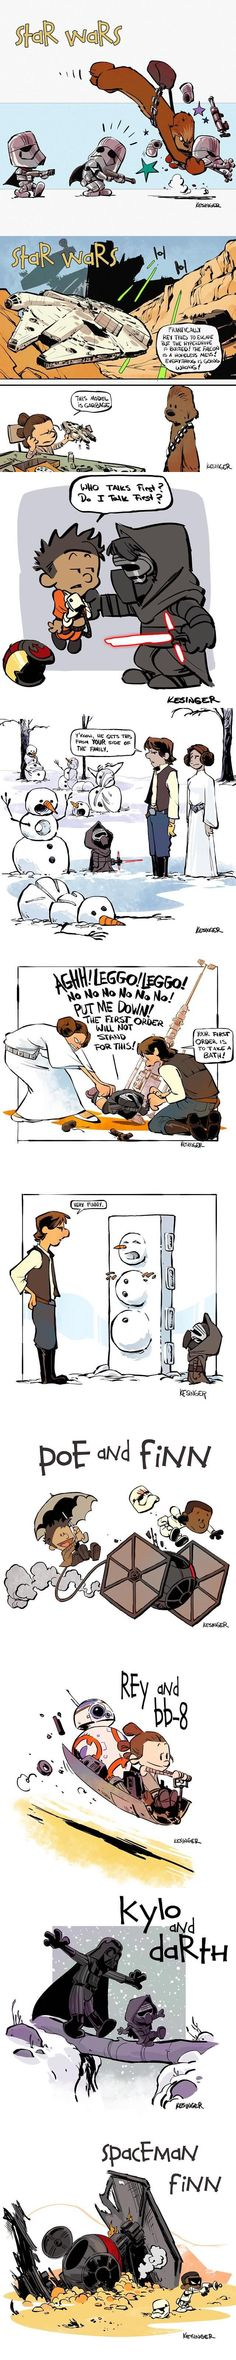 Calvin & Hobbes style Star Wars: The Force Awakens - love this Calvin and Hobbes/Star Wars crossover! Calvin Und Hobbes, Star Wars Art, Star Trek, Tableau Star Wars, Stormtrooper, Arte Nerd, Star Wars Personajes, Chef D Oeuvre, The Force Is Strong